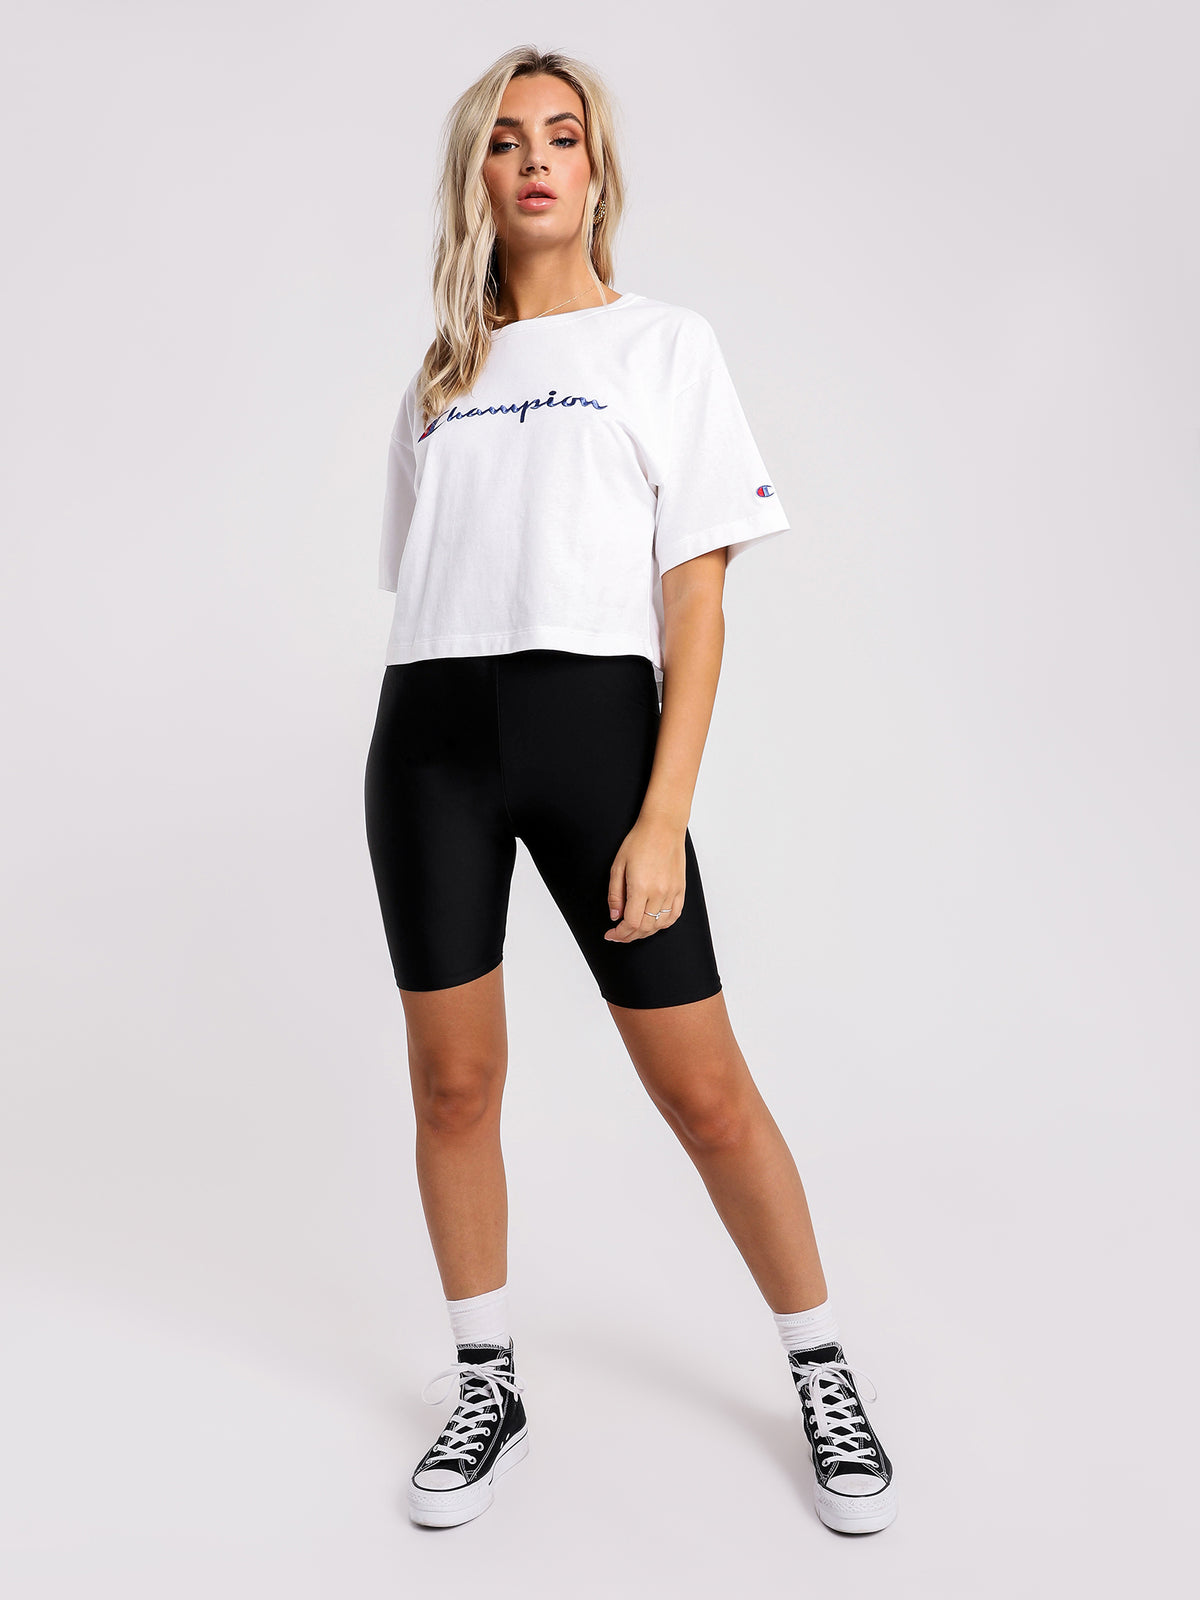 Heritage Large Script Crop T-Shirt in White